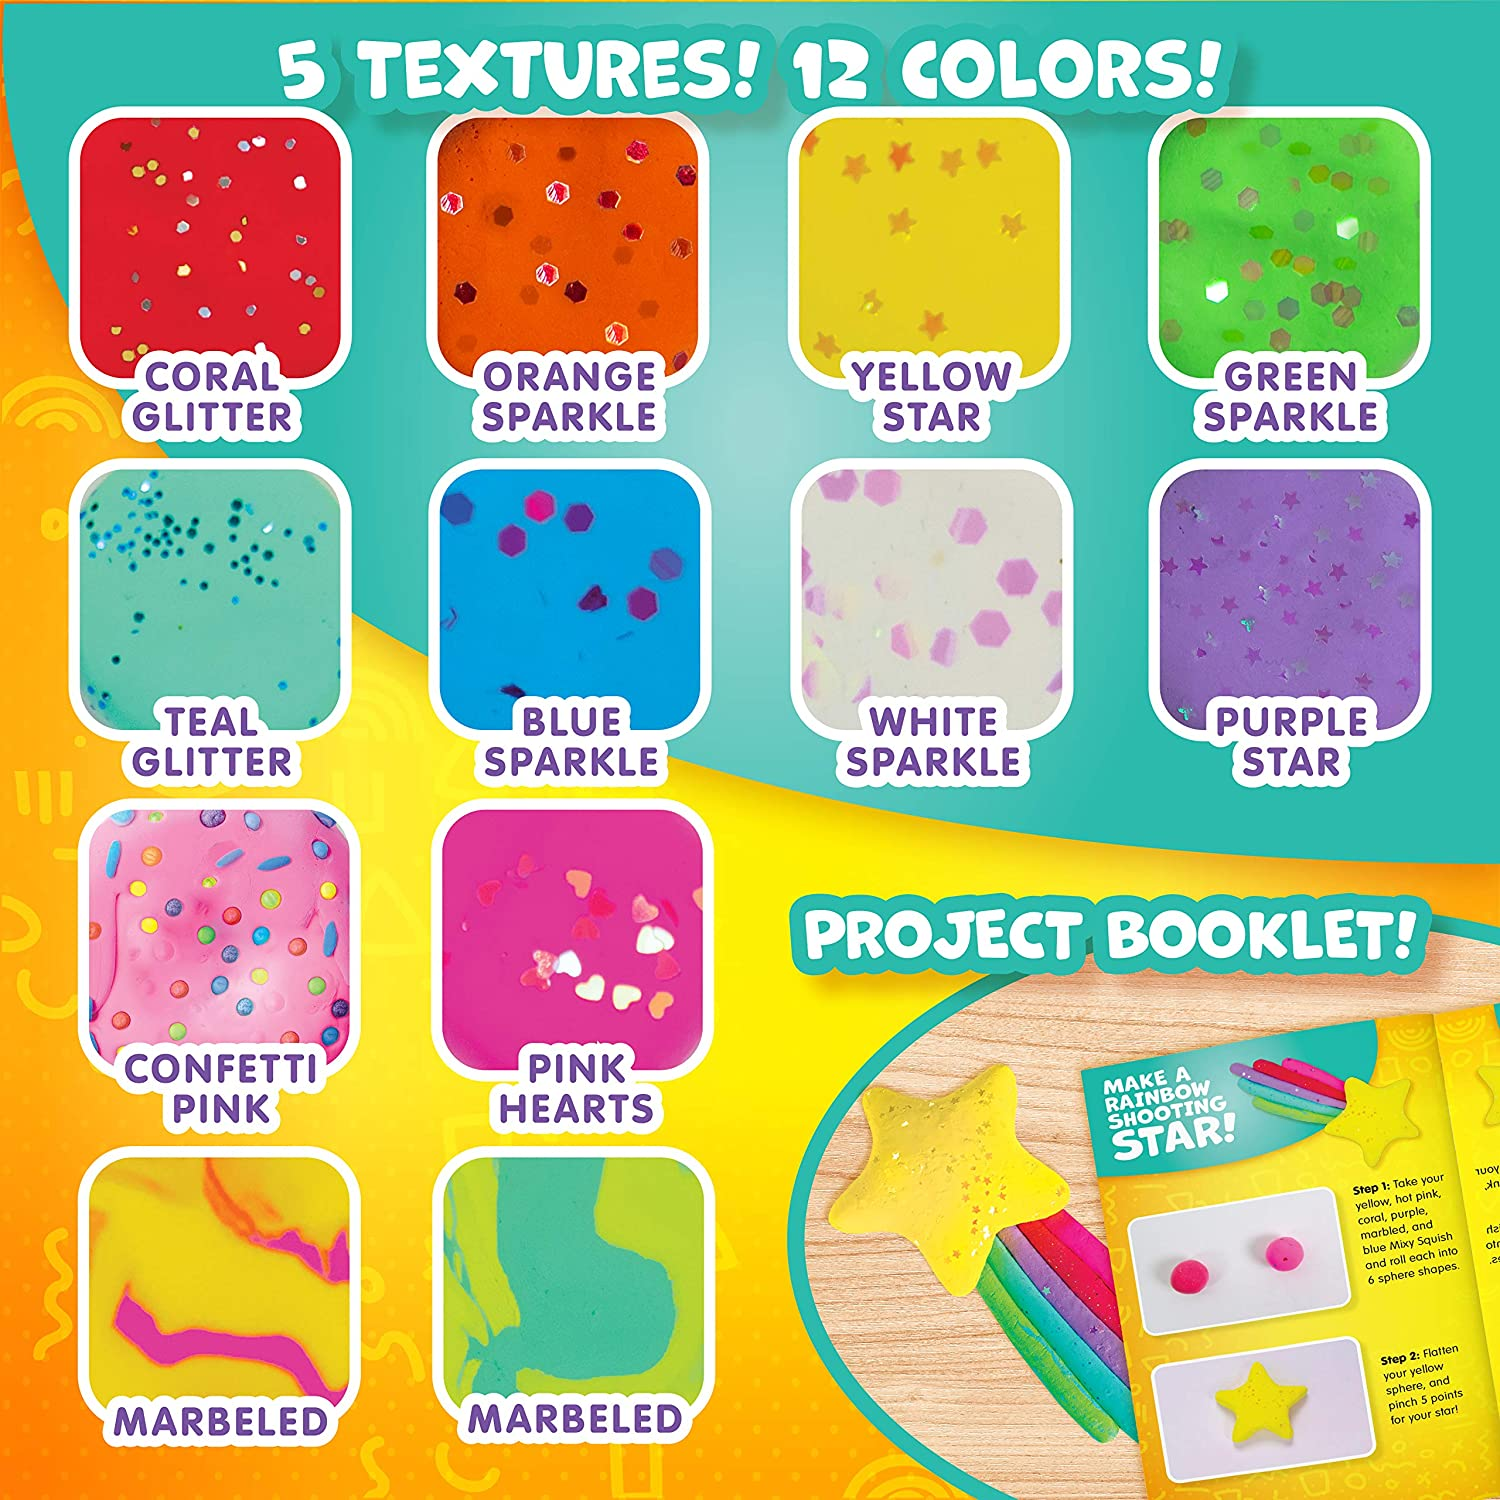 Textured Air Dry Clay Includes 12 Colors in 5 Textures Sculpt It Stretch It Dries Without Cracks.. Mixy Squish Pastel Mega Pack by Horizon Group USA Squish It